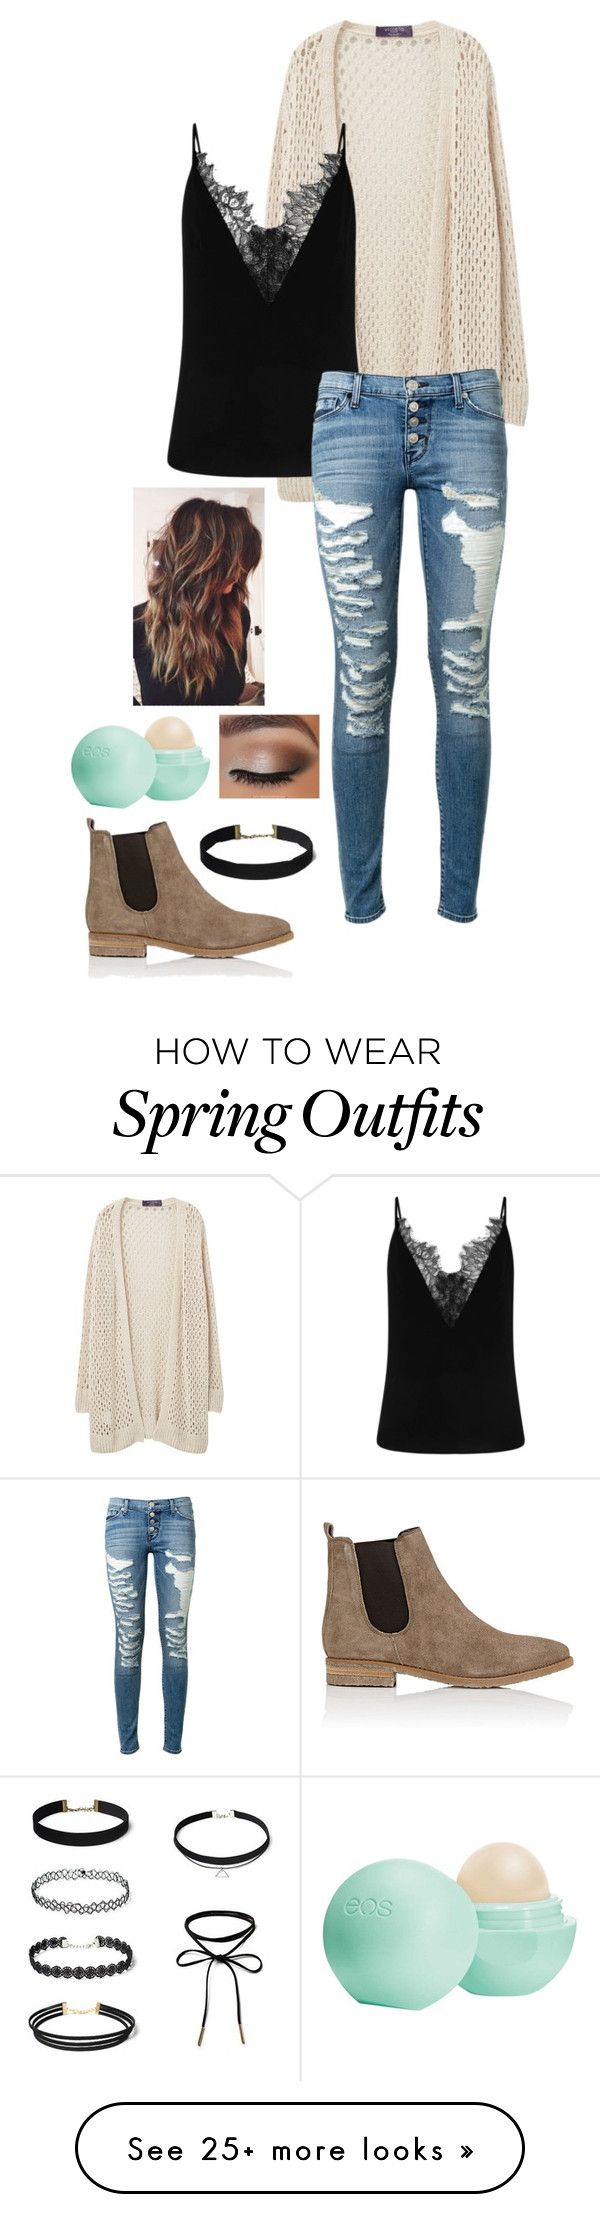 """Winter to Spring Outfit"" by foreverblonde2001 on Polyvore featuring Violeta by Mango, Hudson, Eos and Barneys New York"